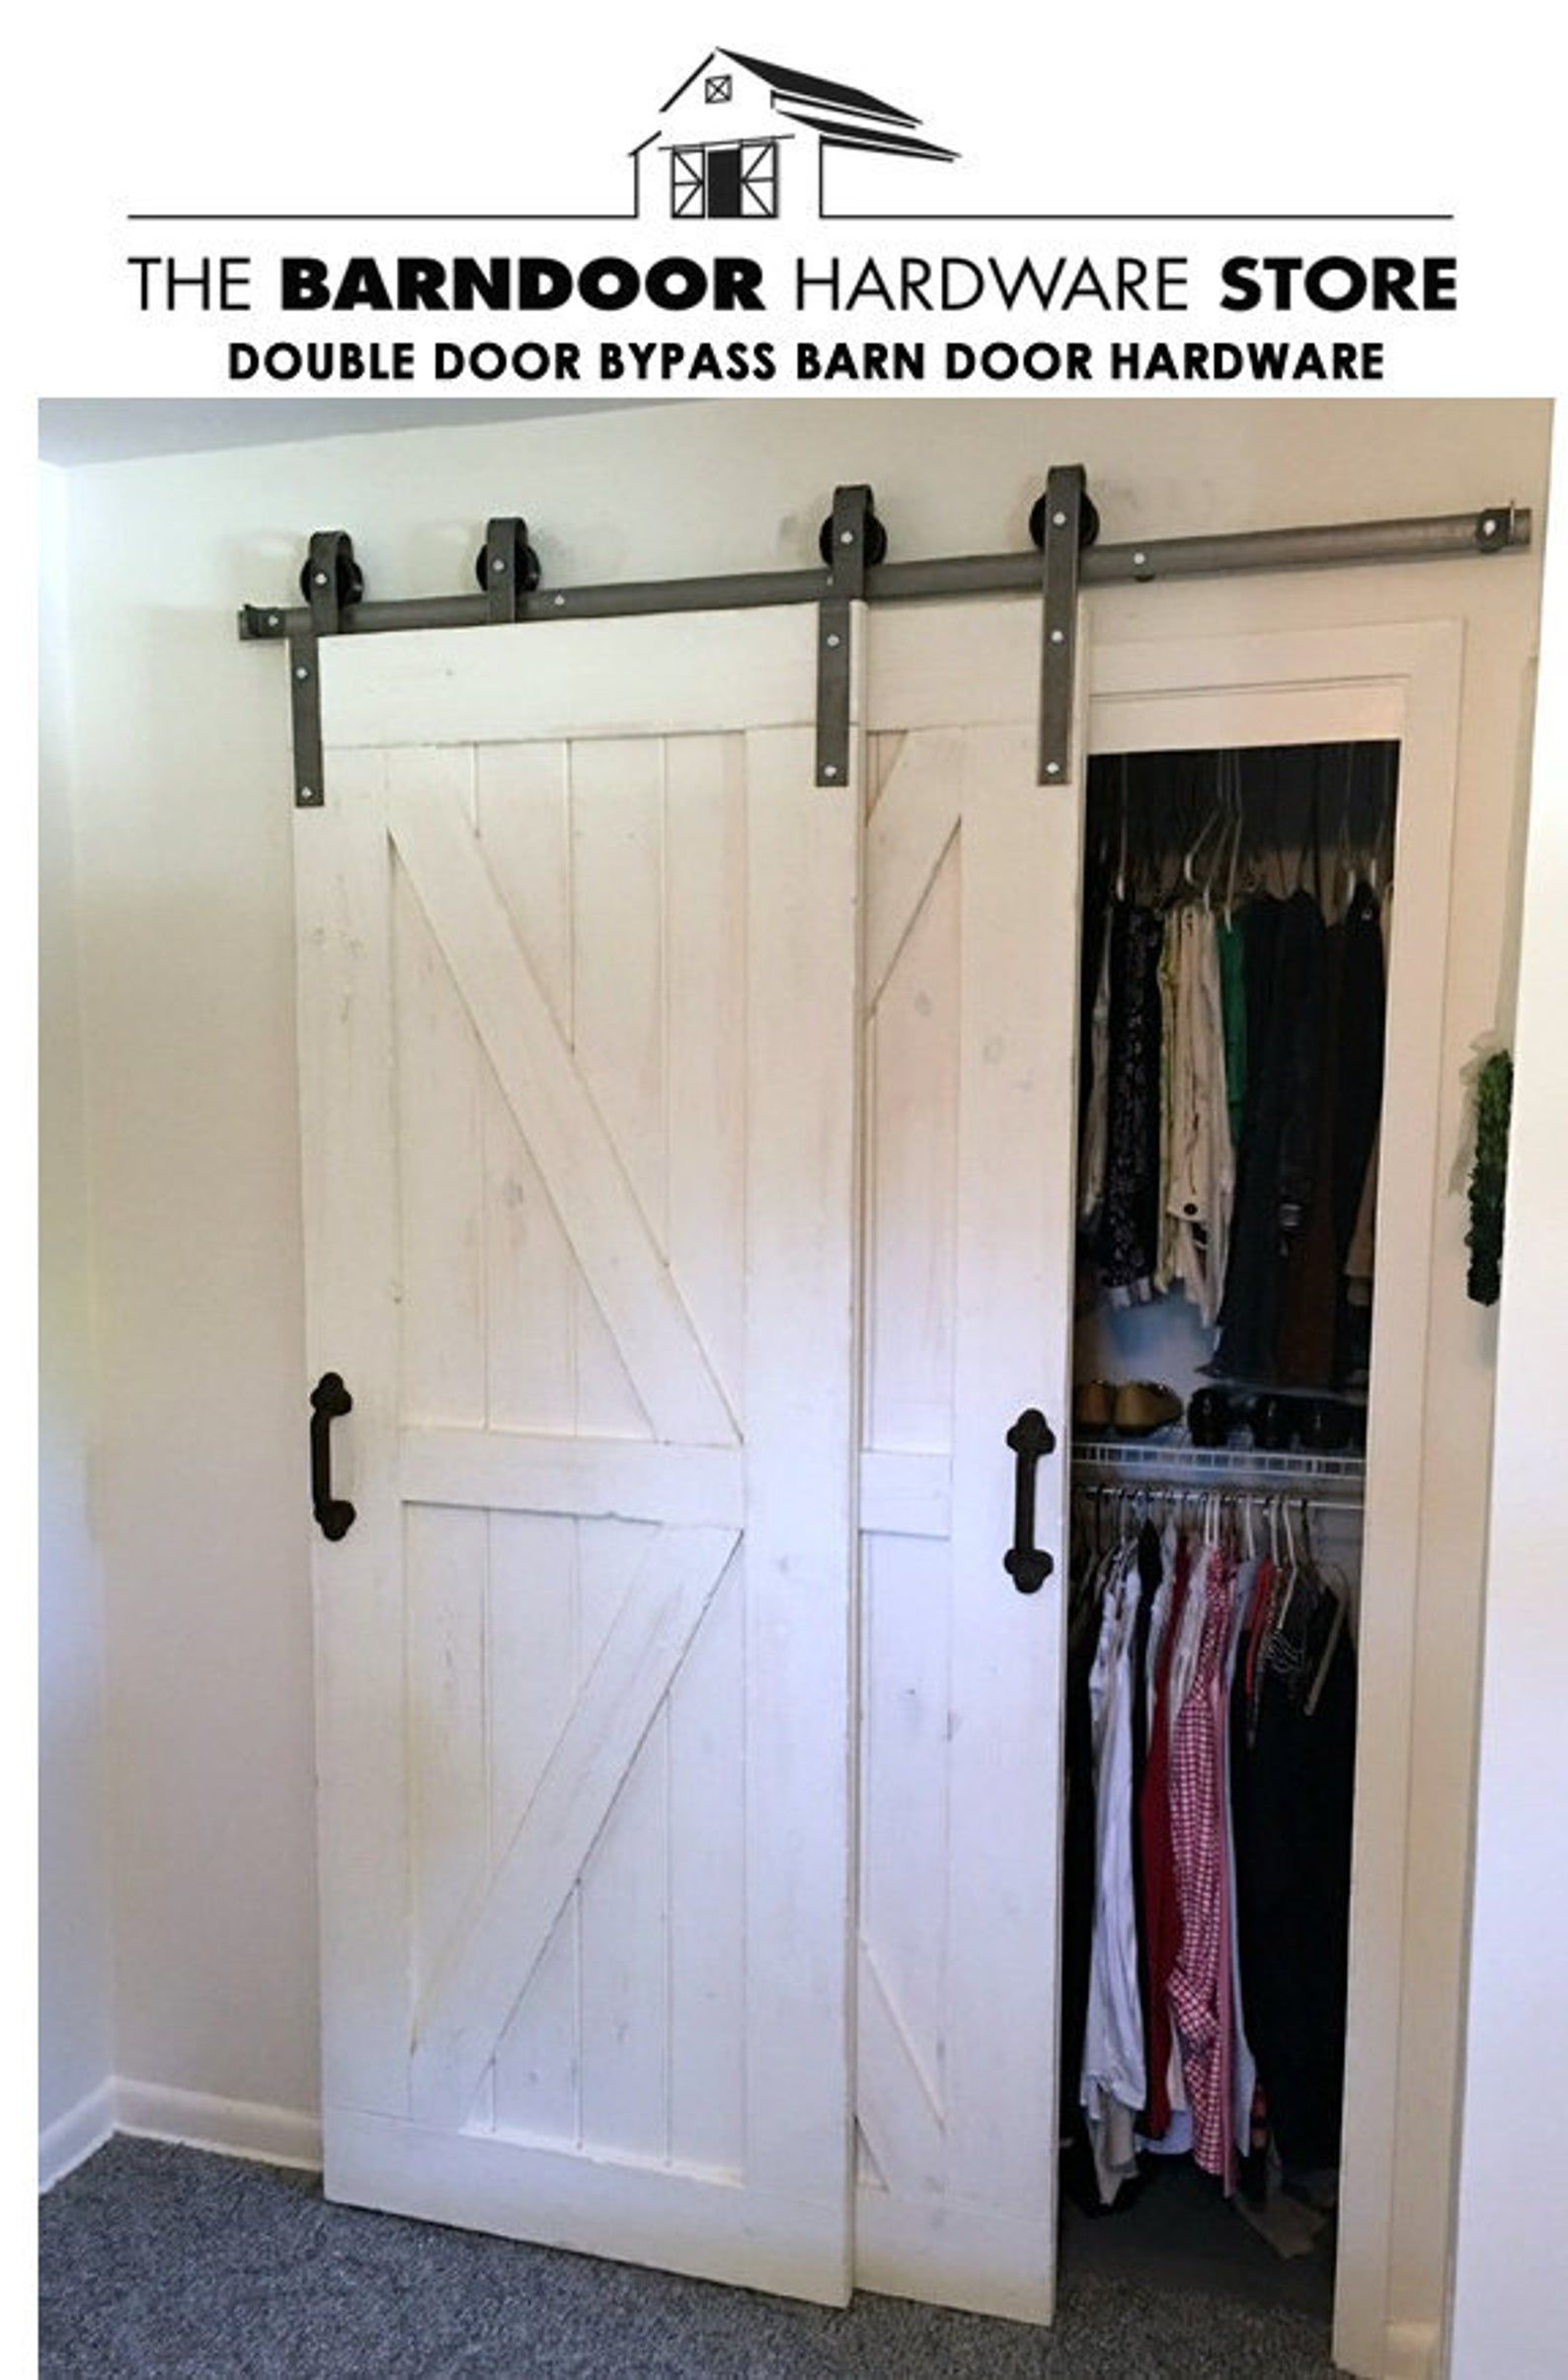 Double Door Single Track Bypass Barn Door On A Single Rail Etsy In 2020 Bypass Barn Door Bedroom Closet Doors Double Sliding Barn Doors